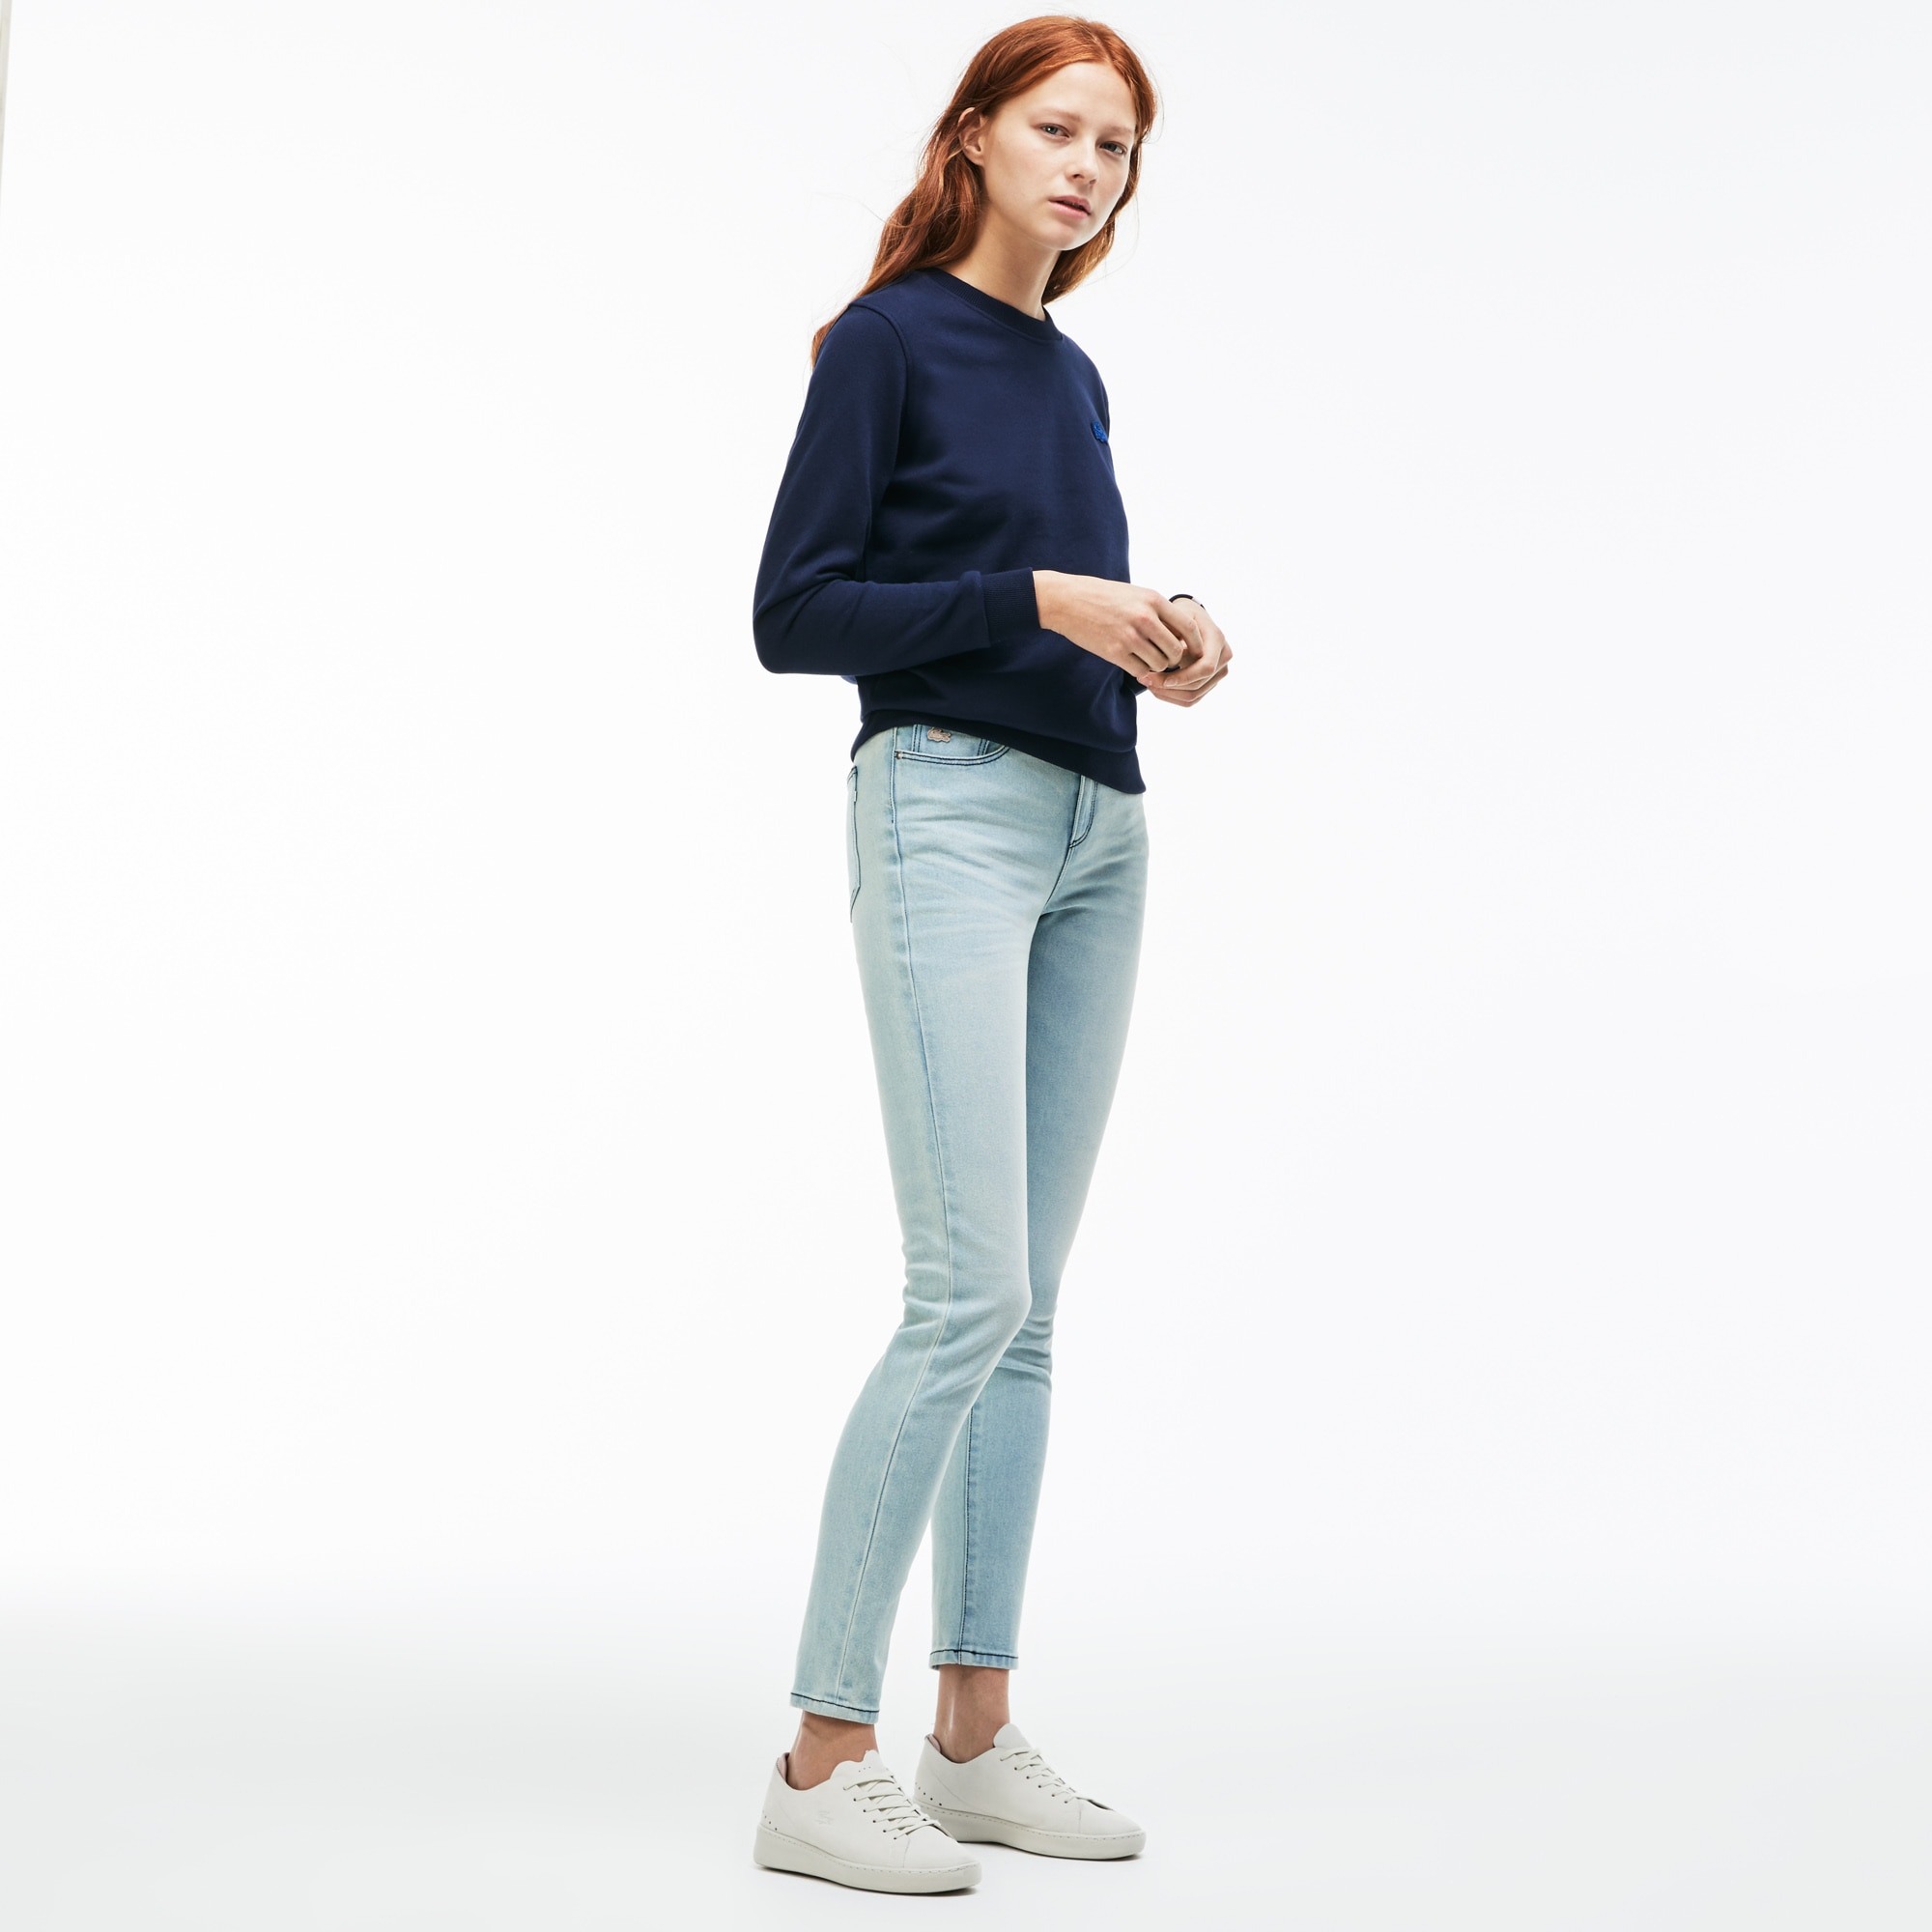 Women's Lacoste LIVE 5-Pocket Stretch Cotton Denim Jeans